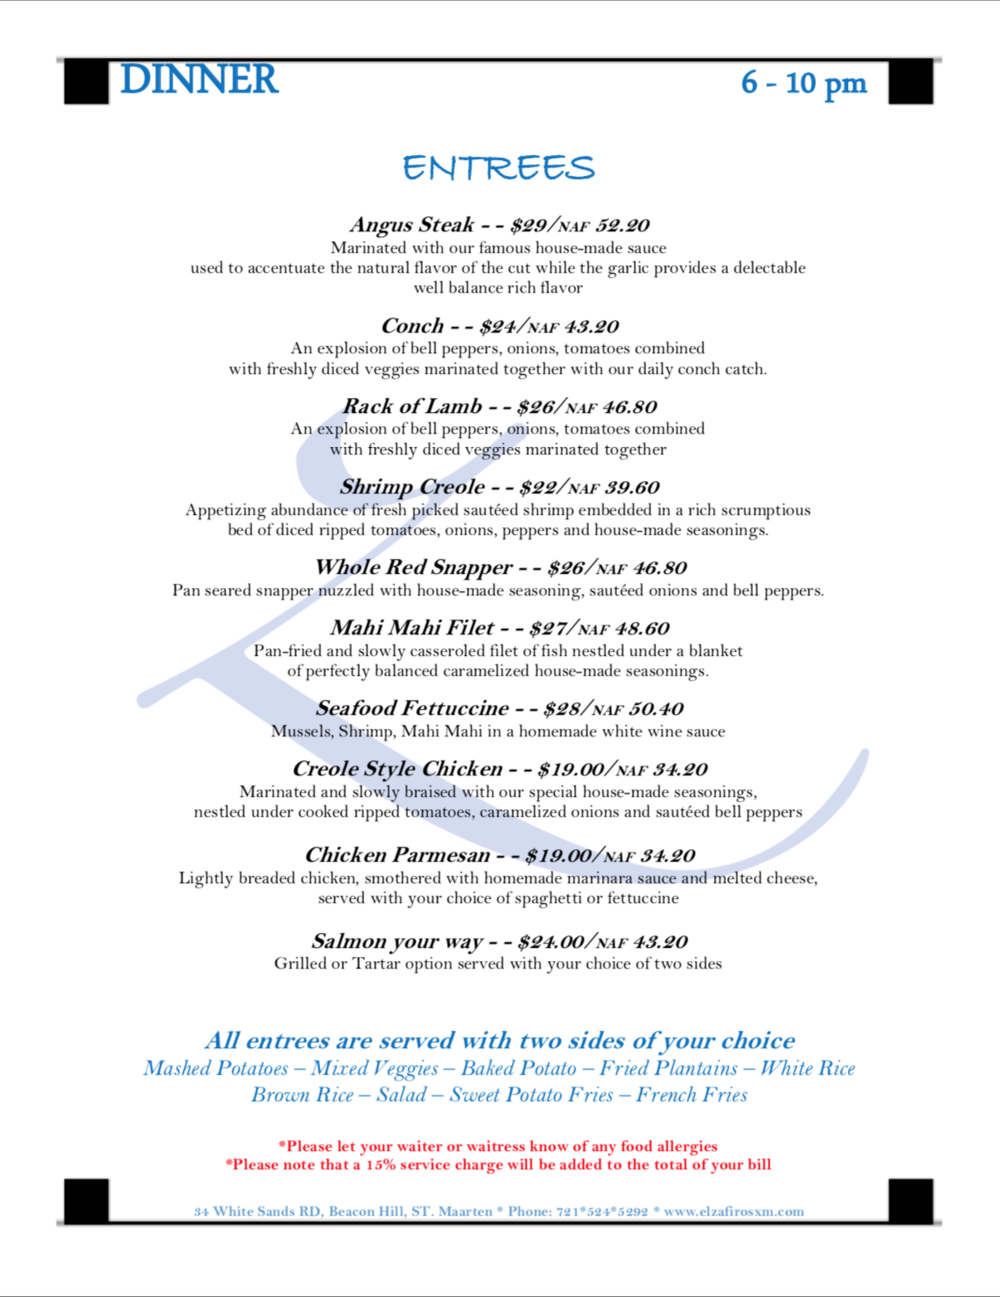 click to view full Dinner menu